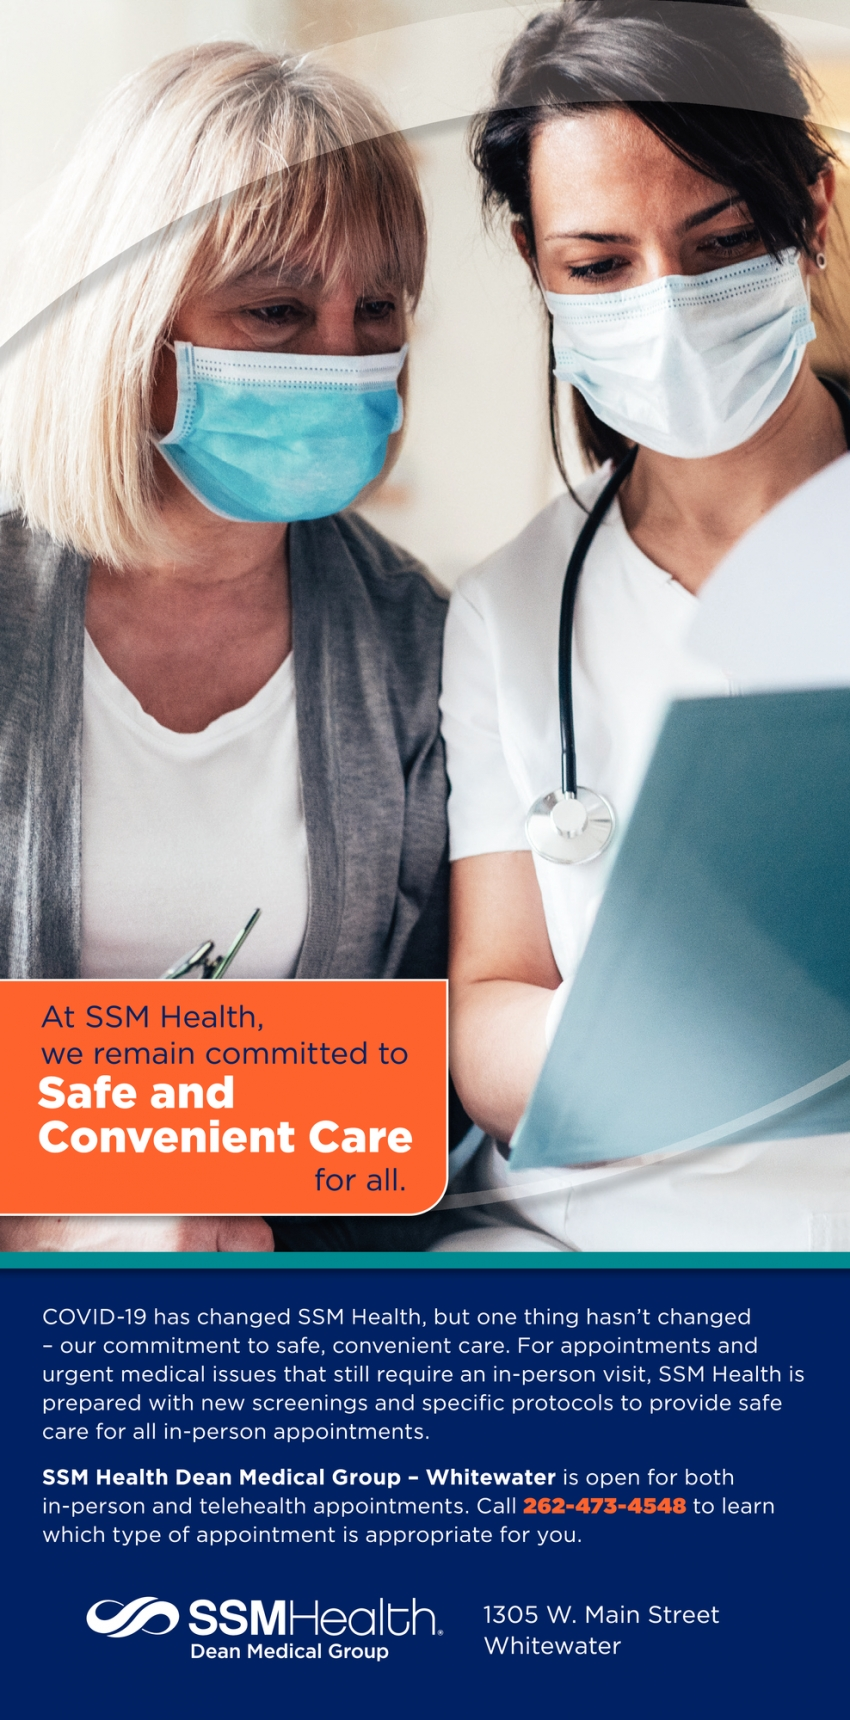 We Remain Committed to Safe and Convenient Care for All